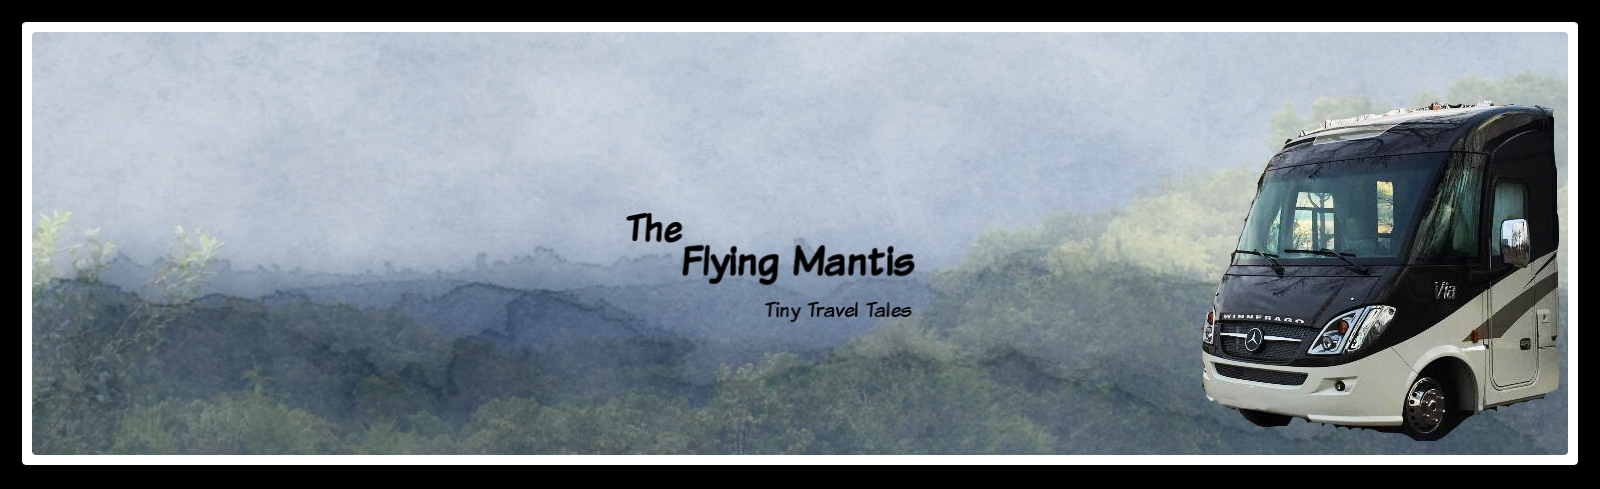 The Flying Mantis